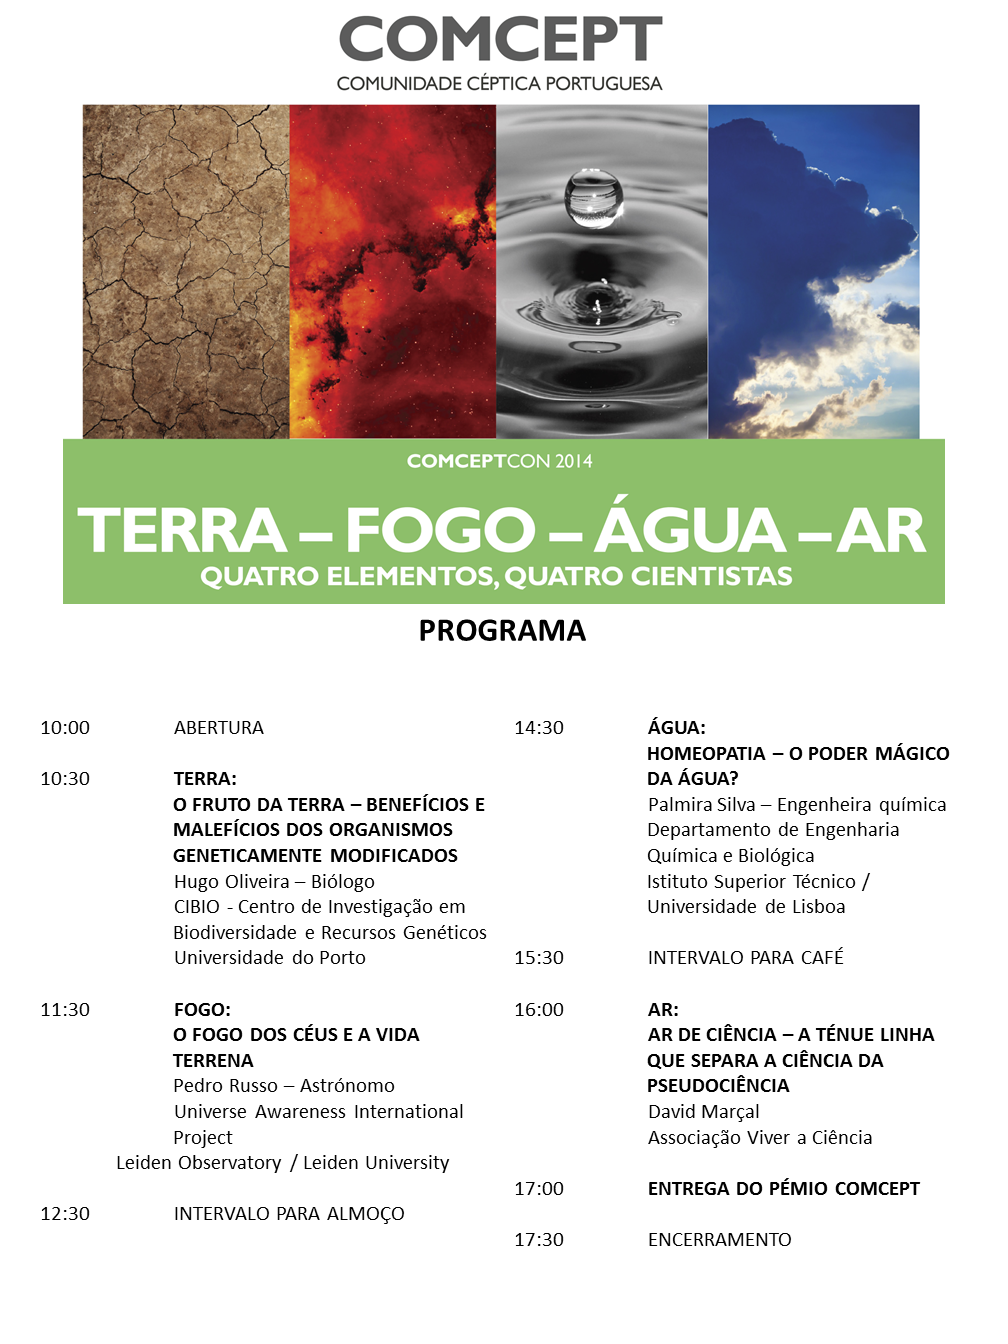 Programa da ComceptCon 2014